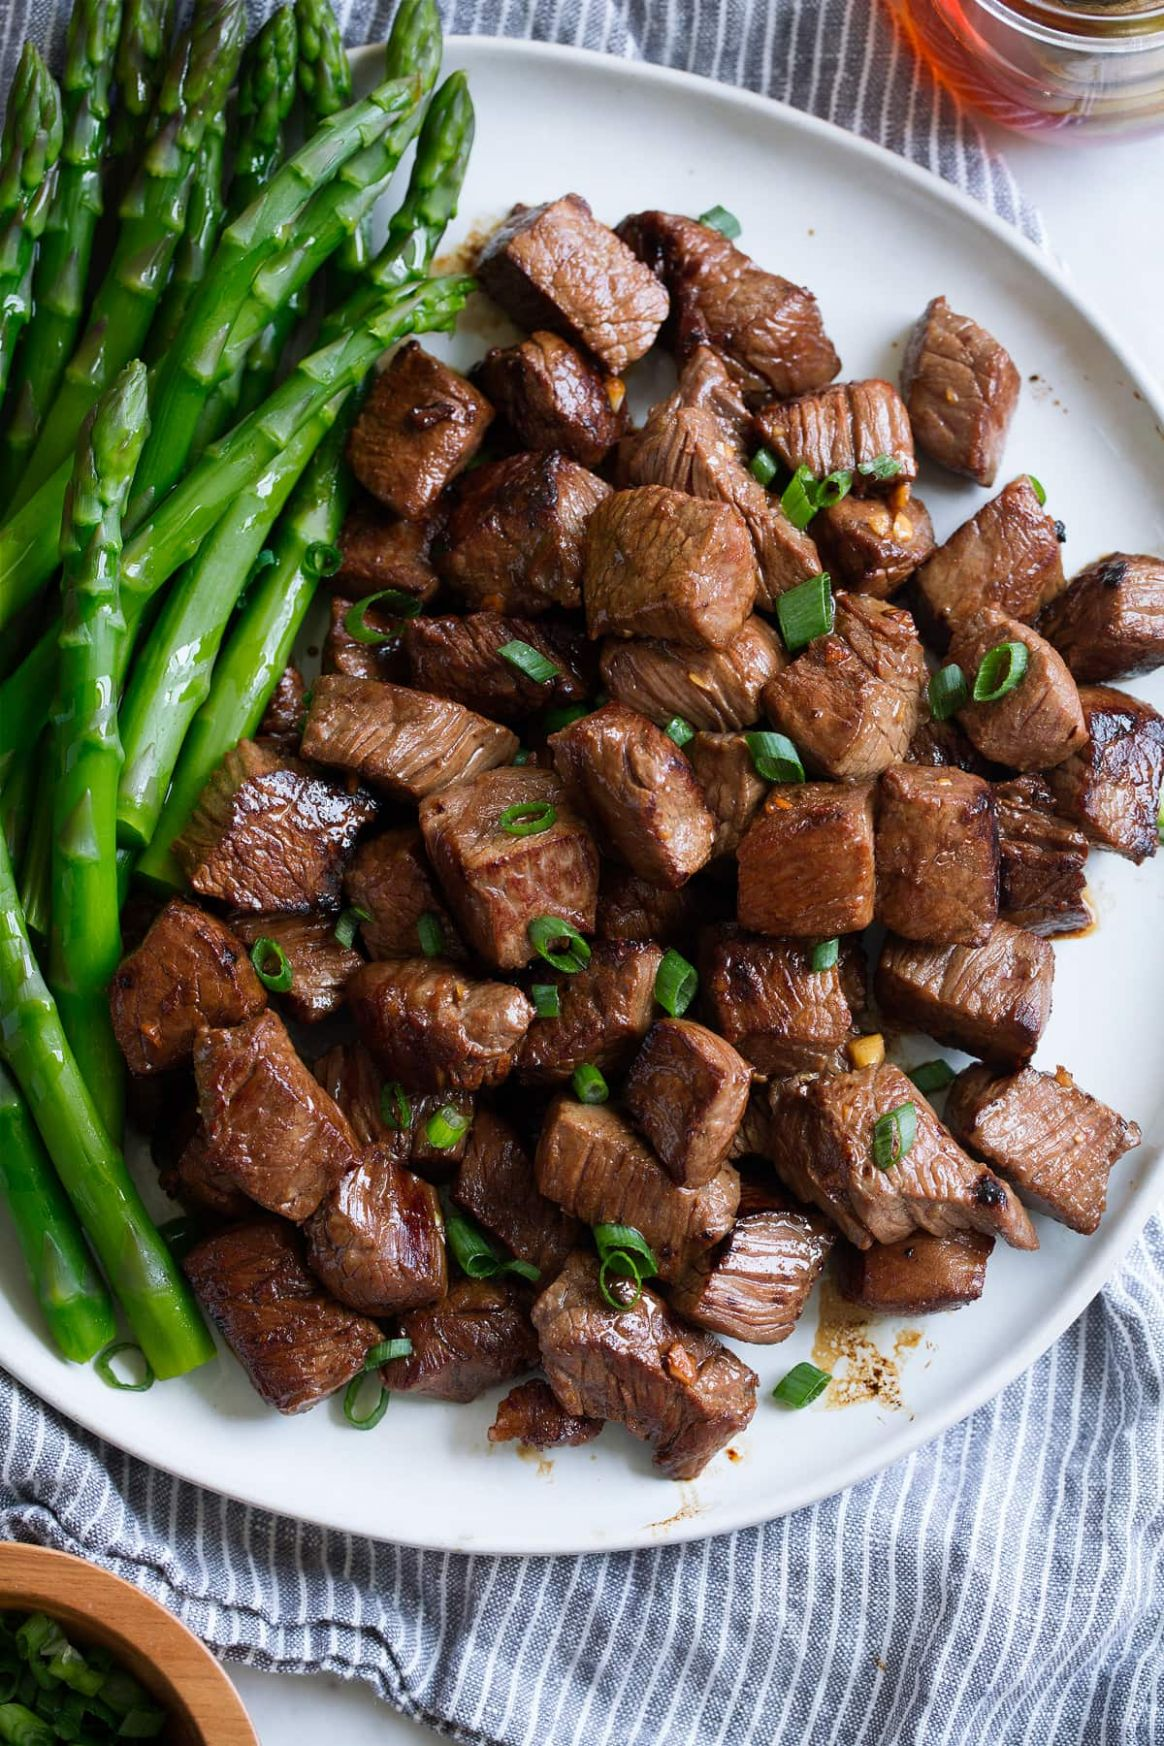 Honey Garlic Steak Bites - Cooking Classy - Recipes Diced Beef